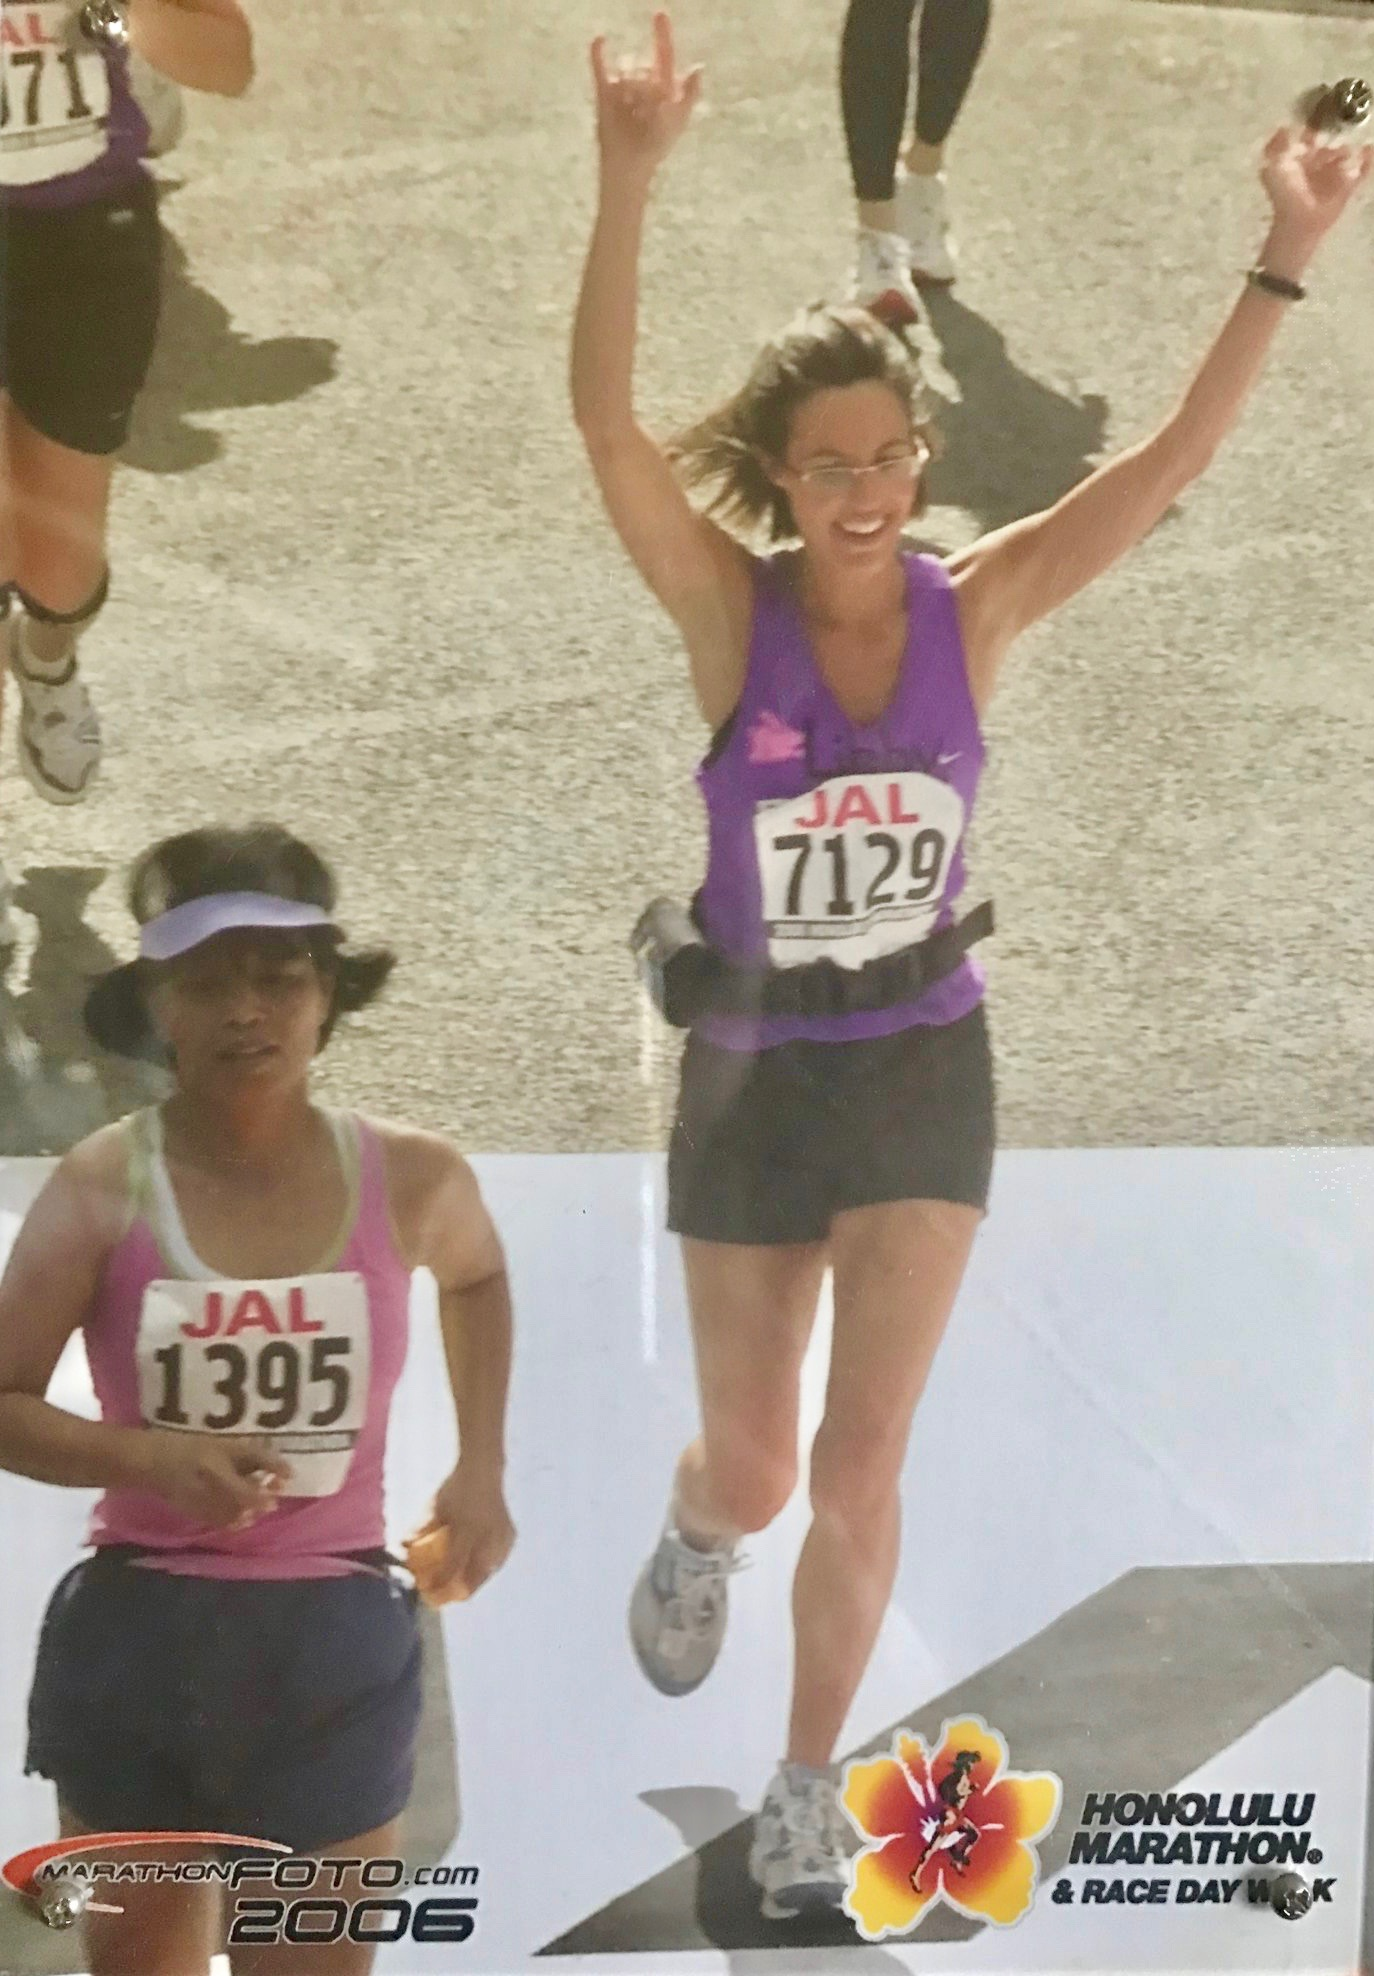 Endurance events teach us how to push on and gain mental strength. I learned this running the Honolulu Marathon.